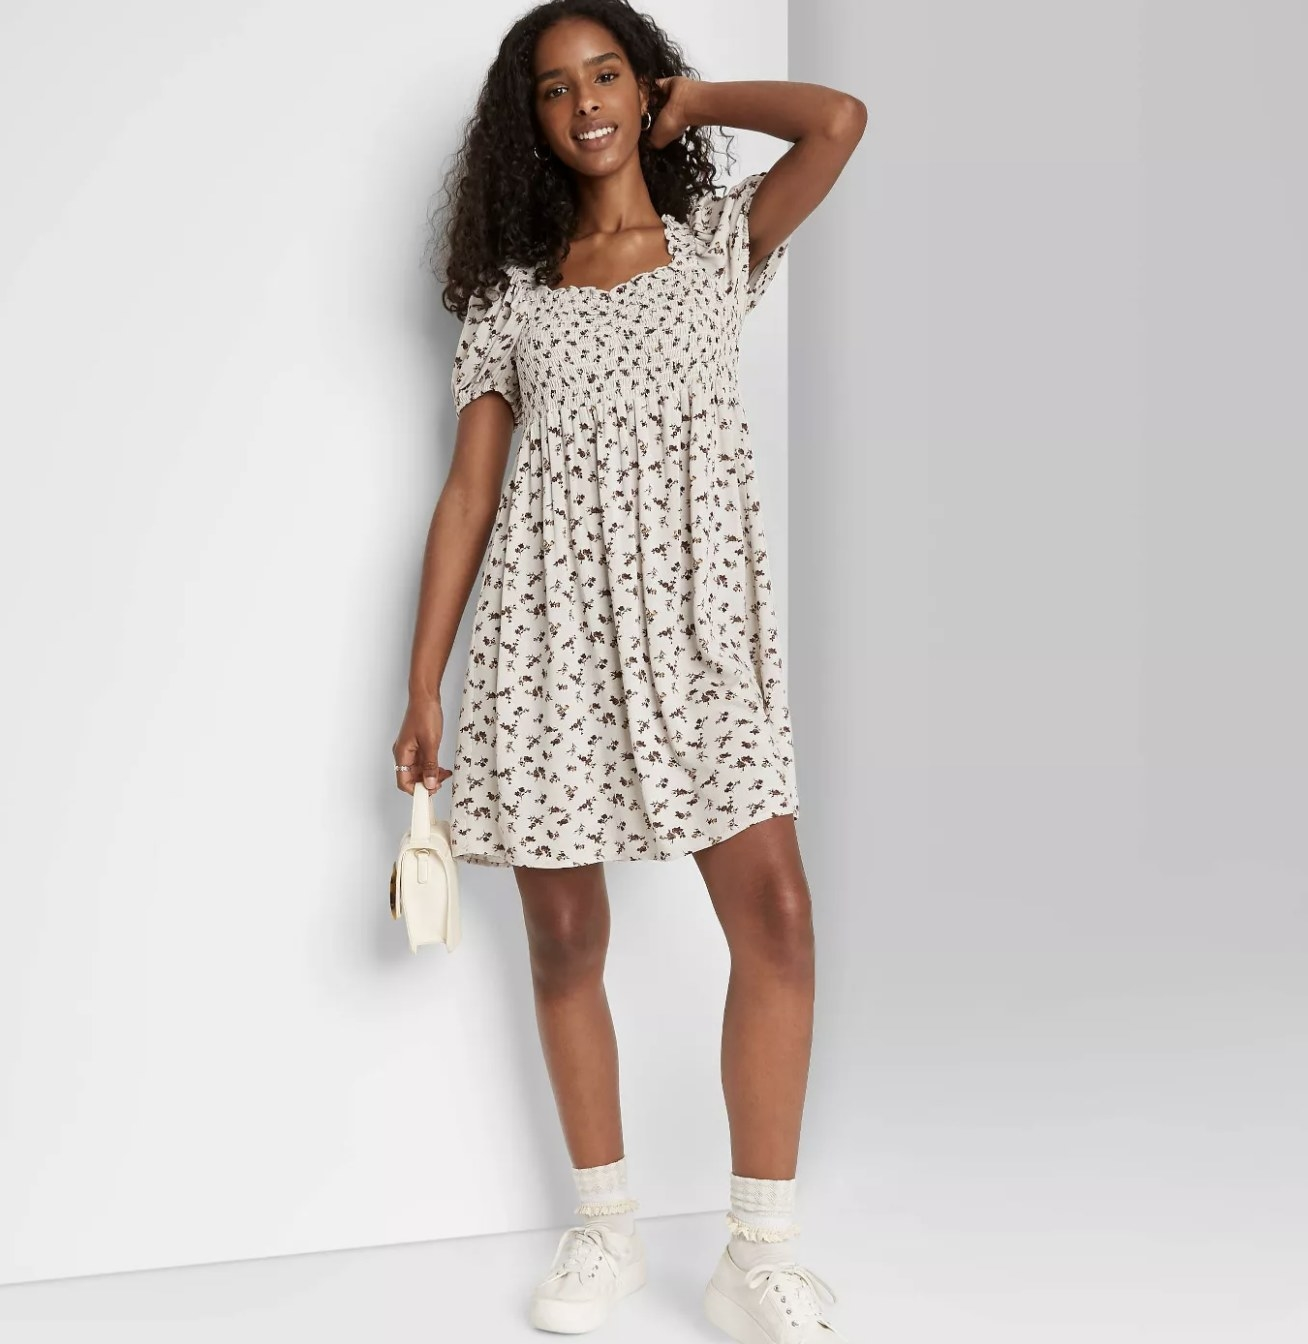 short puff-sleeve printed dress in ivory floral